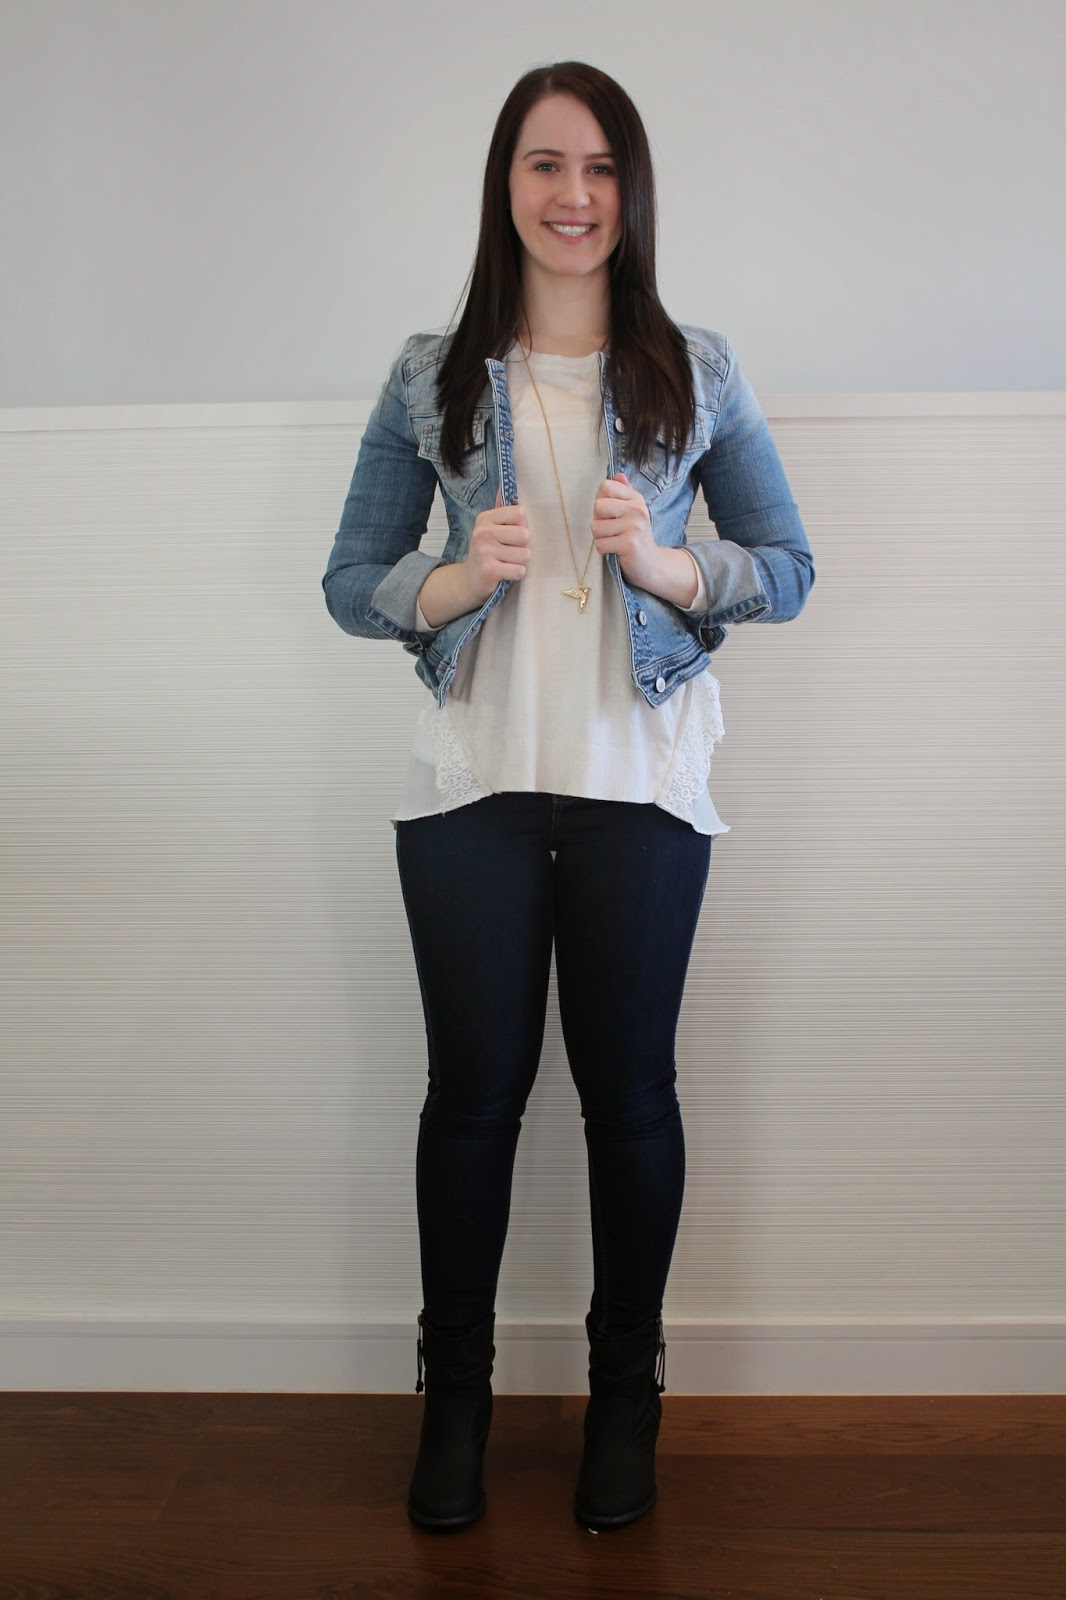 spring outfit, melbourne outfit, weekend outfit, everyday outfit, college outfit, uni outfit, topshop petite jeans, denim jacket, black booties, cream knit with lace, bird long necklace, petite girl outfit